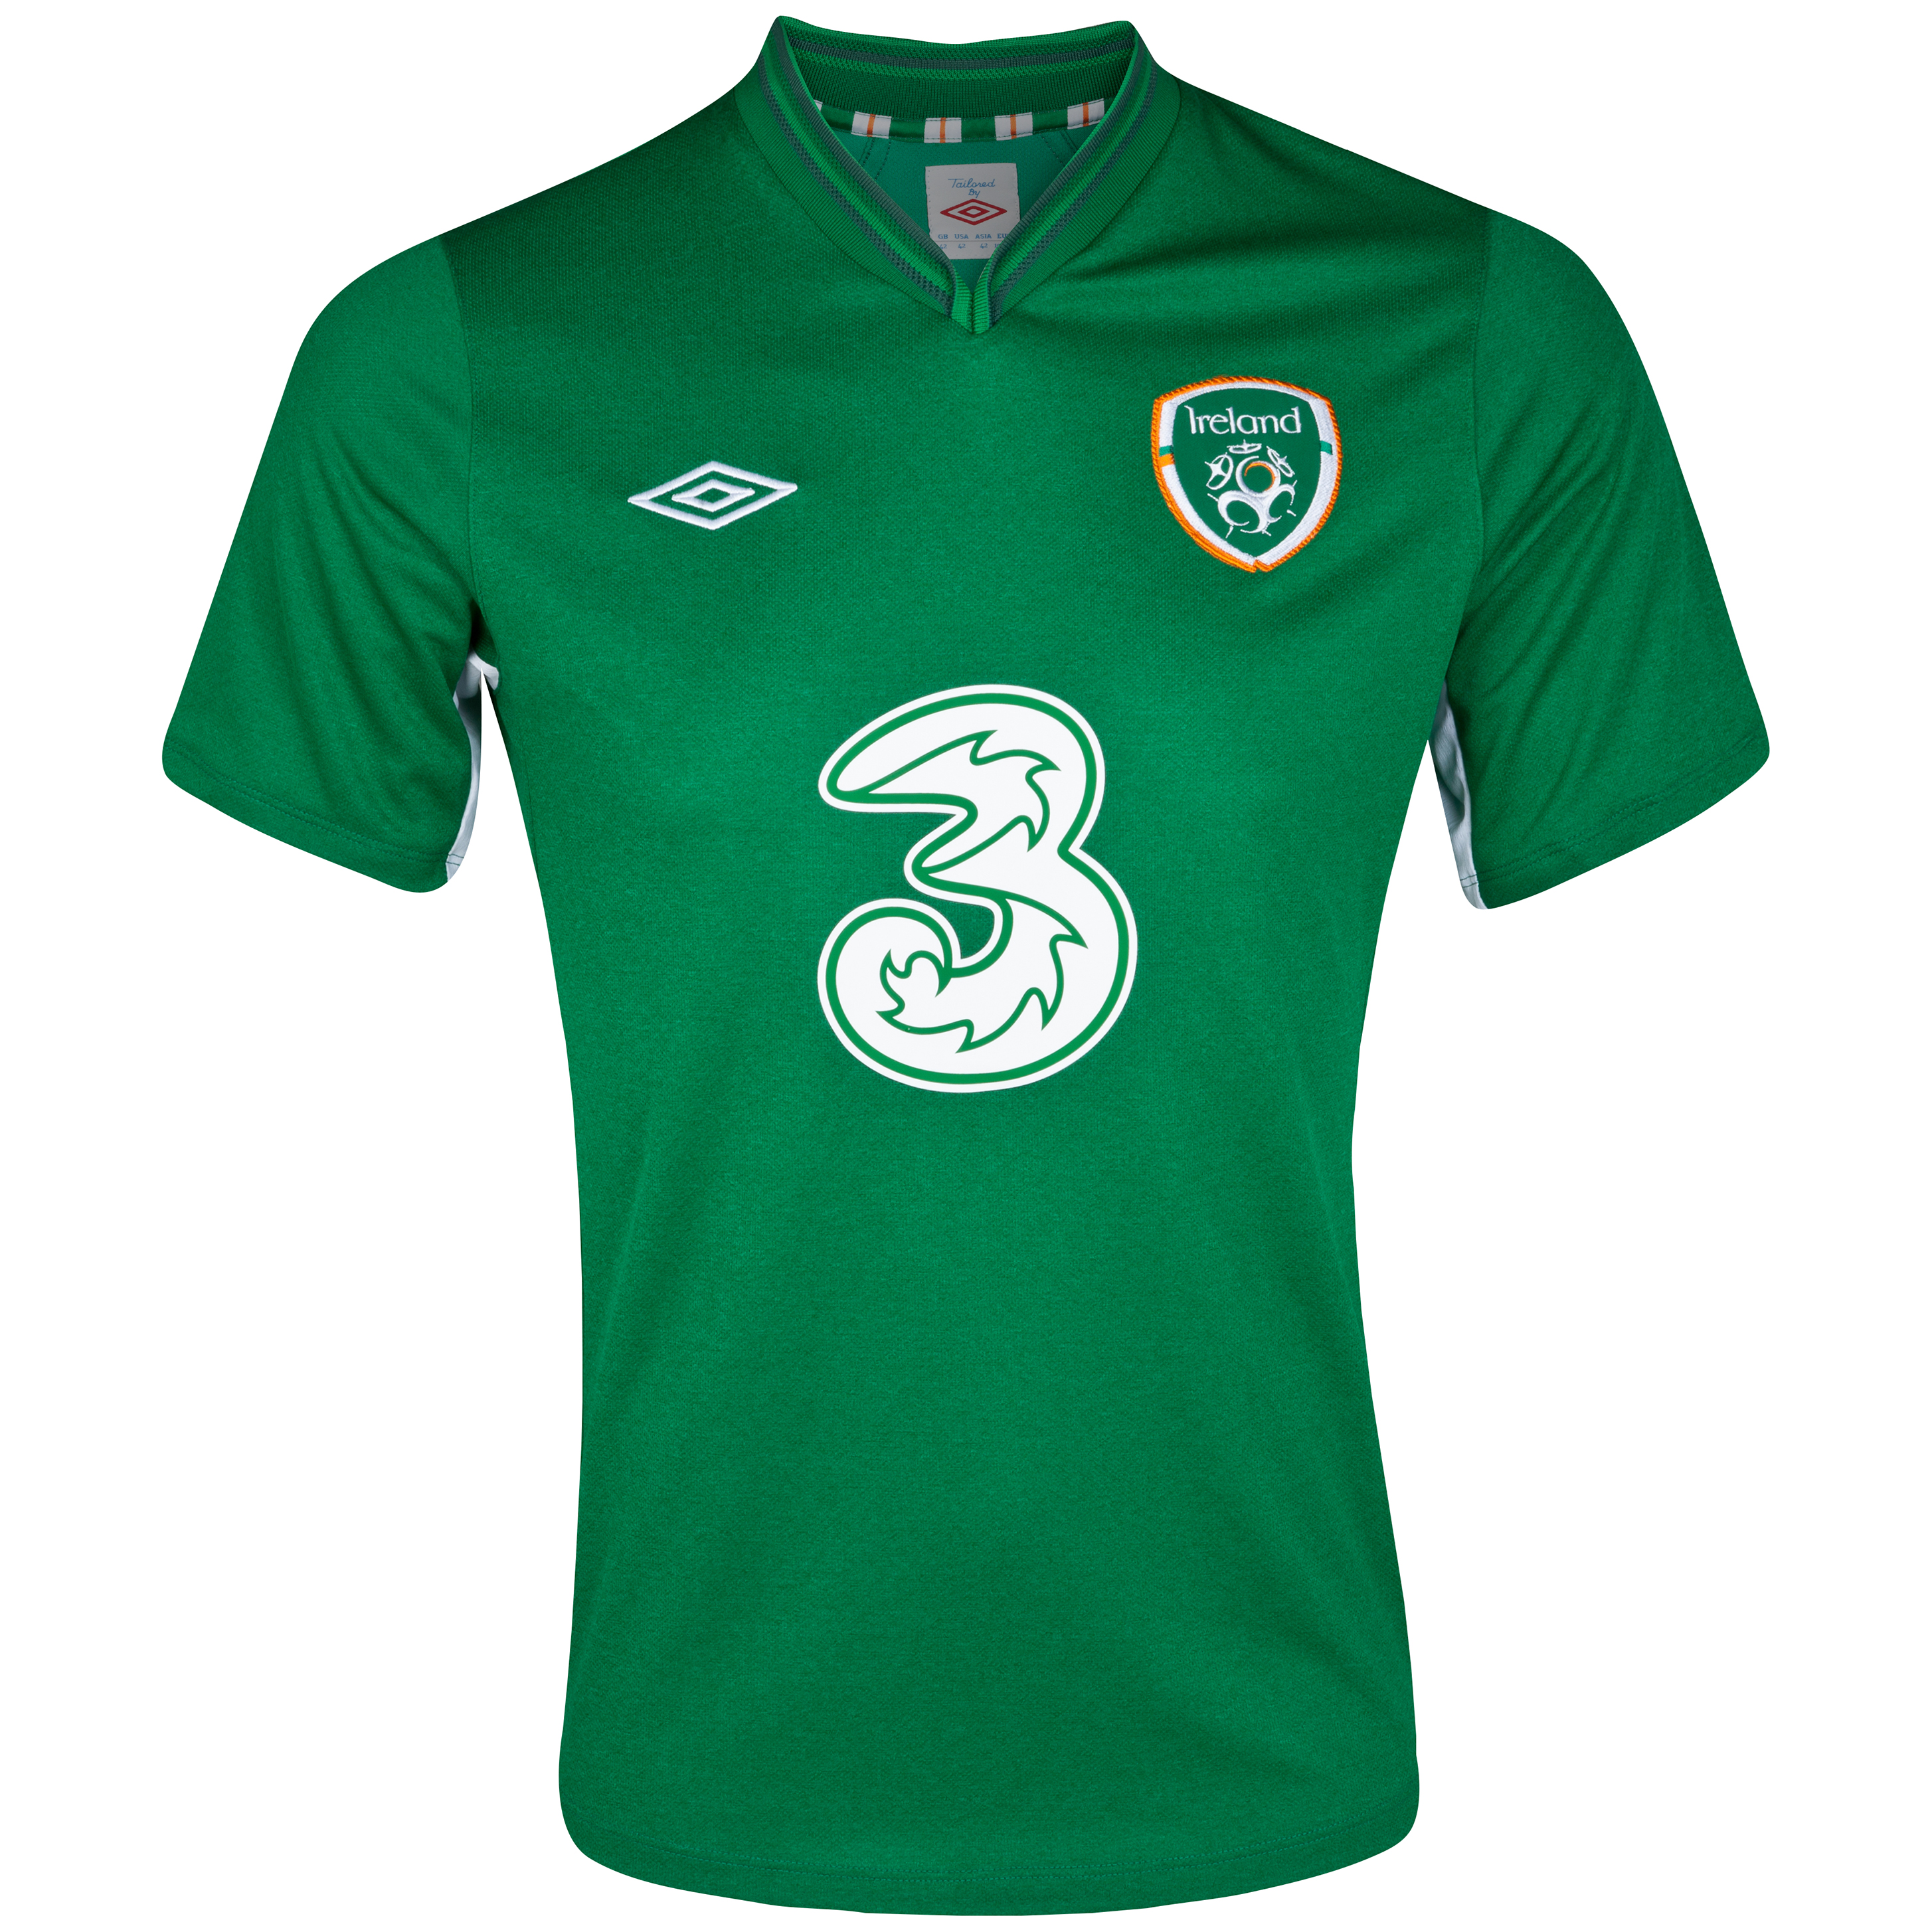 Republic of Ireland Home Shirt